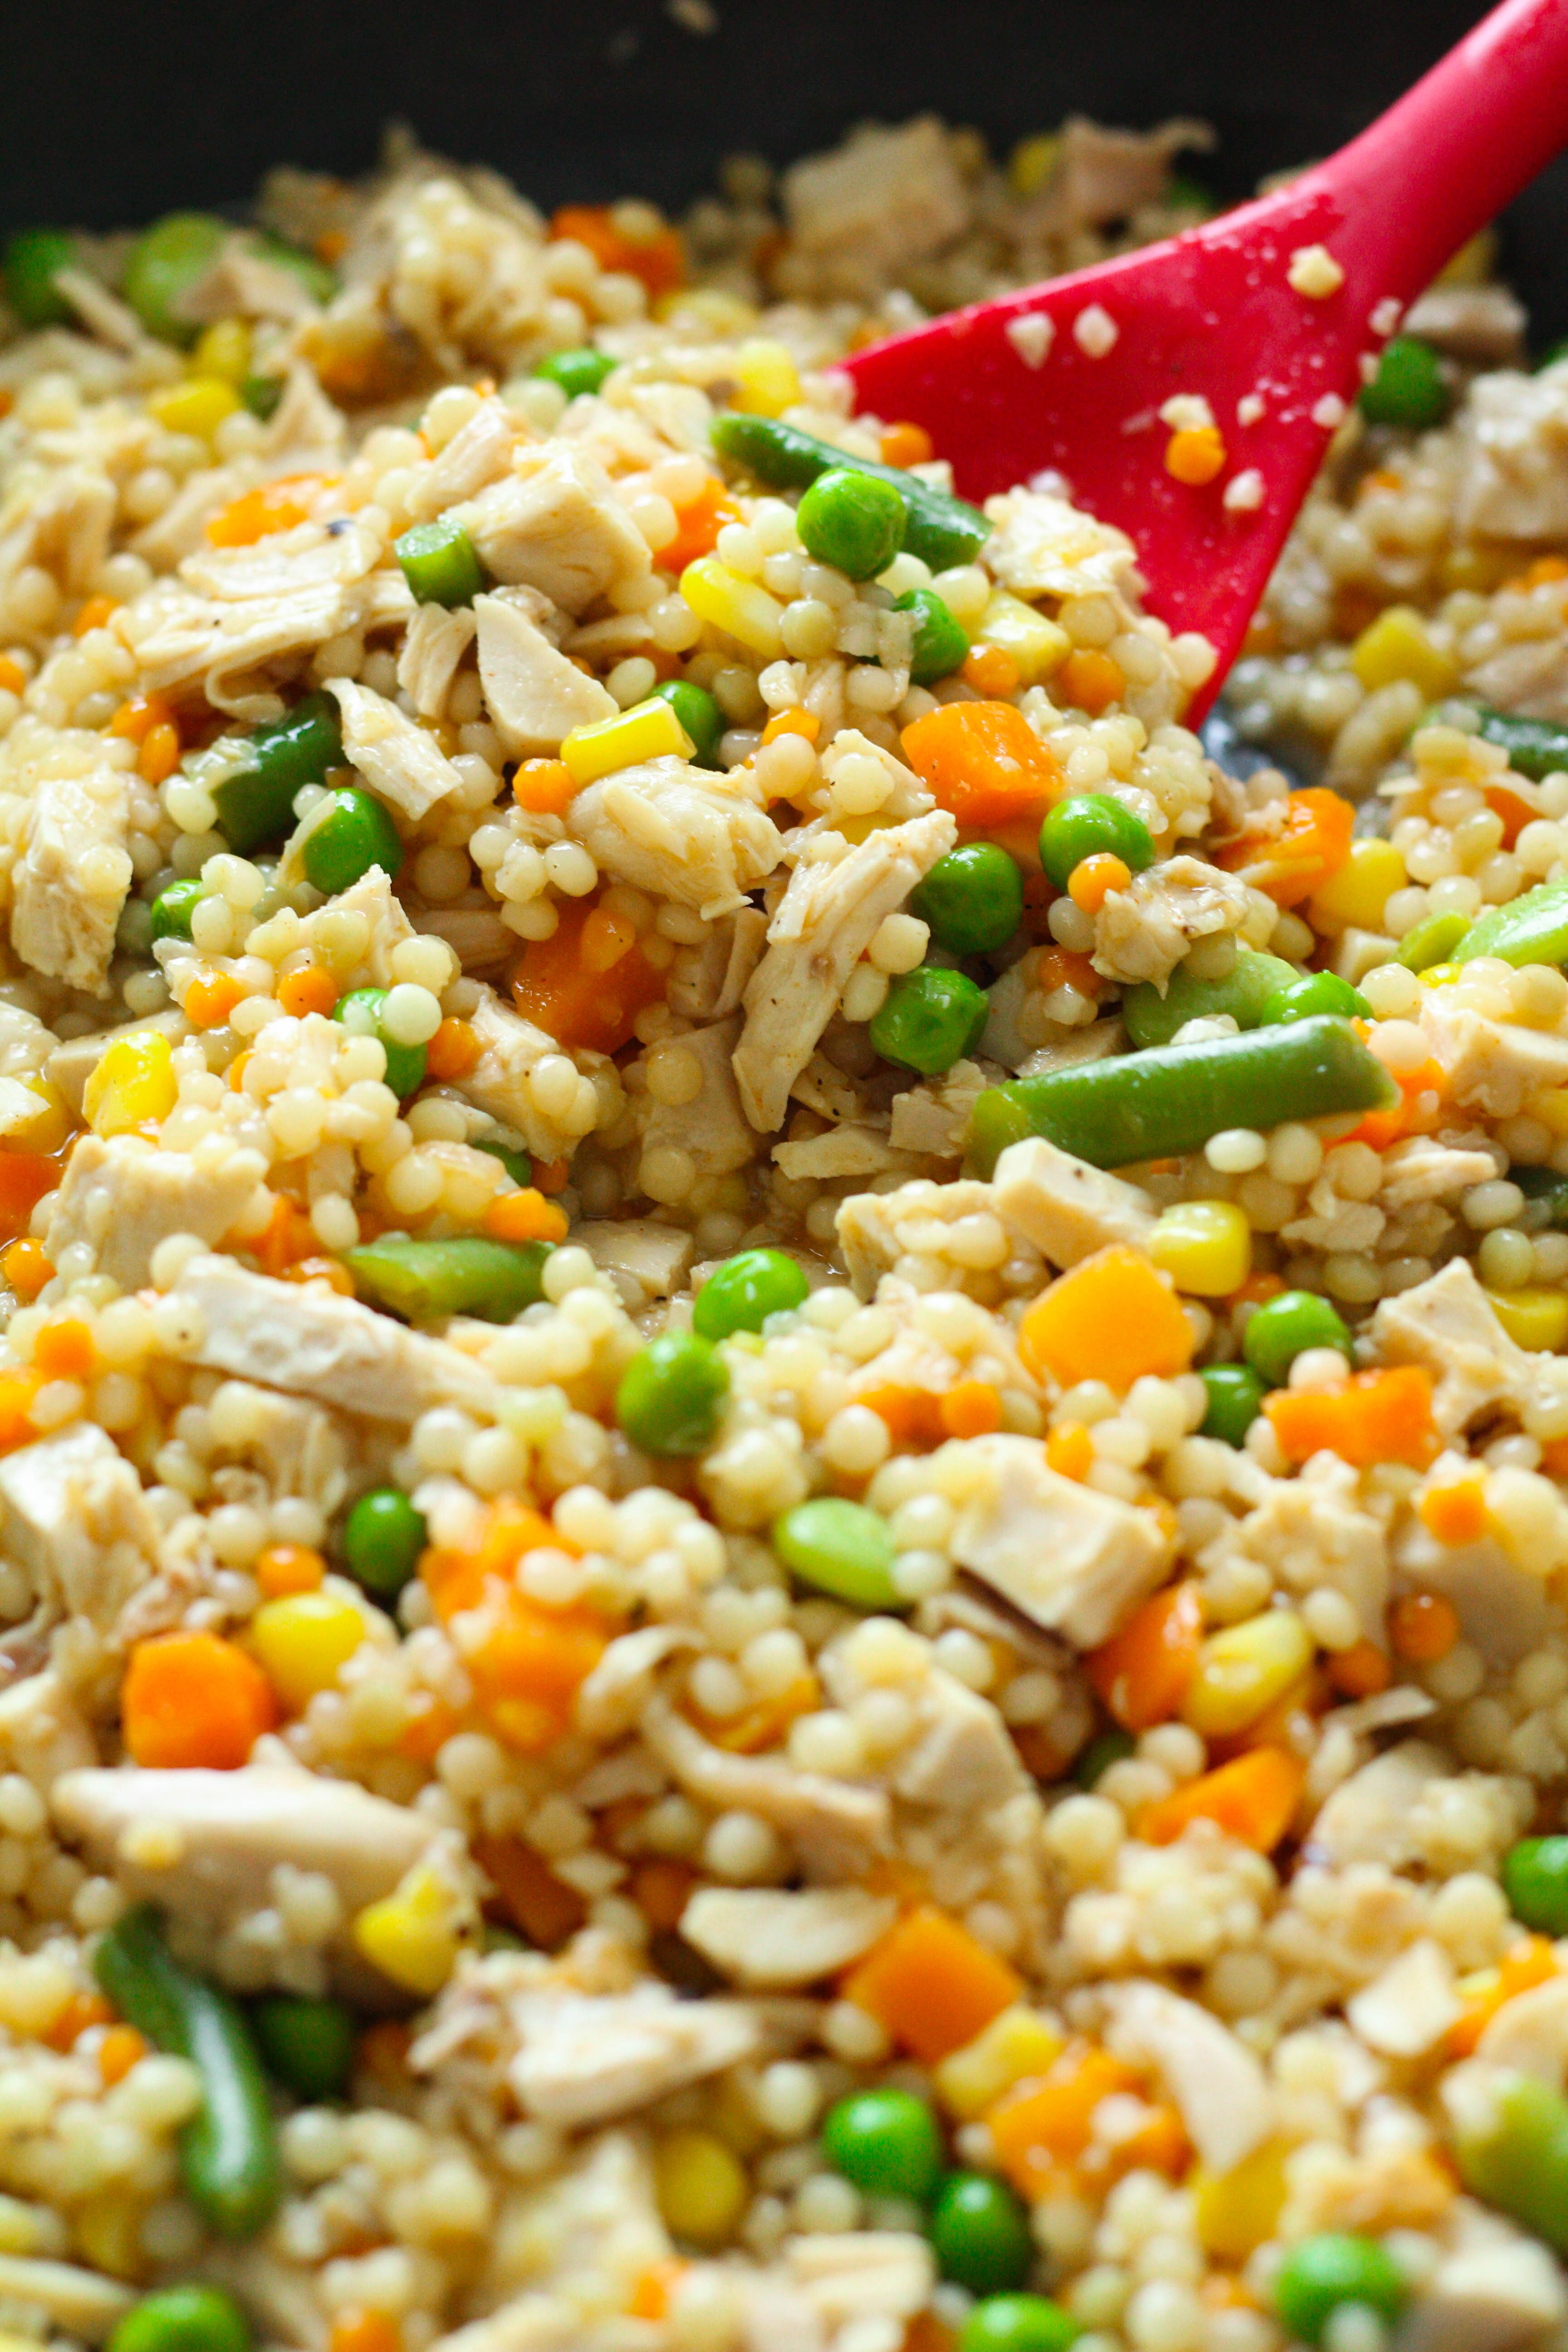 Pearled Couscous with Chicken & Mixed Veggies | Easy dinner recipe | Back to school dinner | 15 minute meal | Mixed veggies | Rotisserie chicken dinner